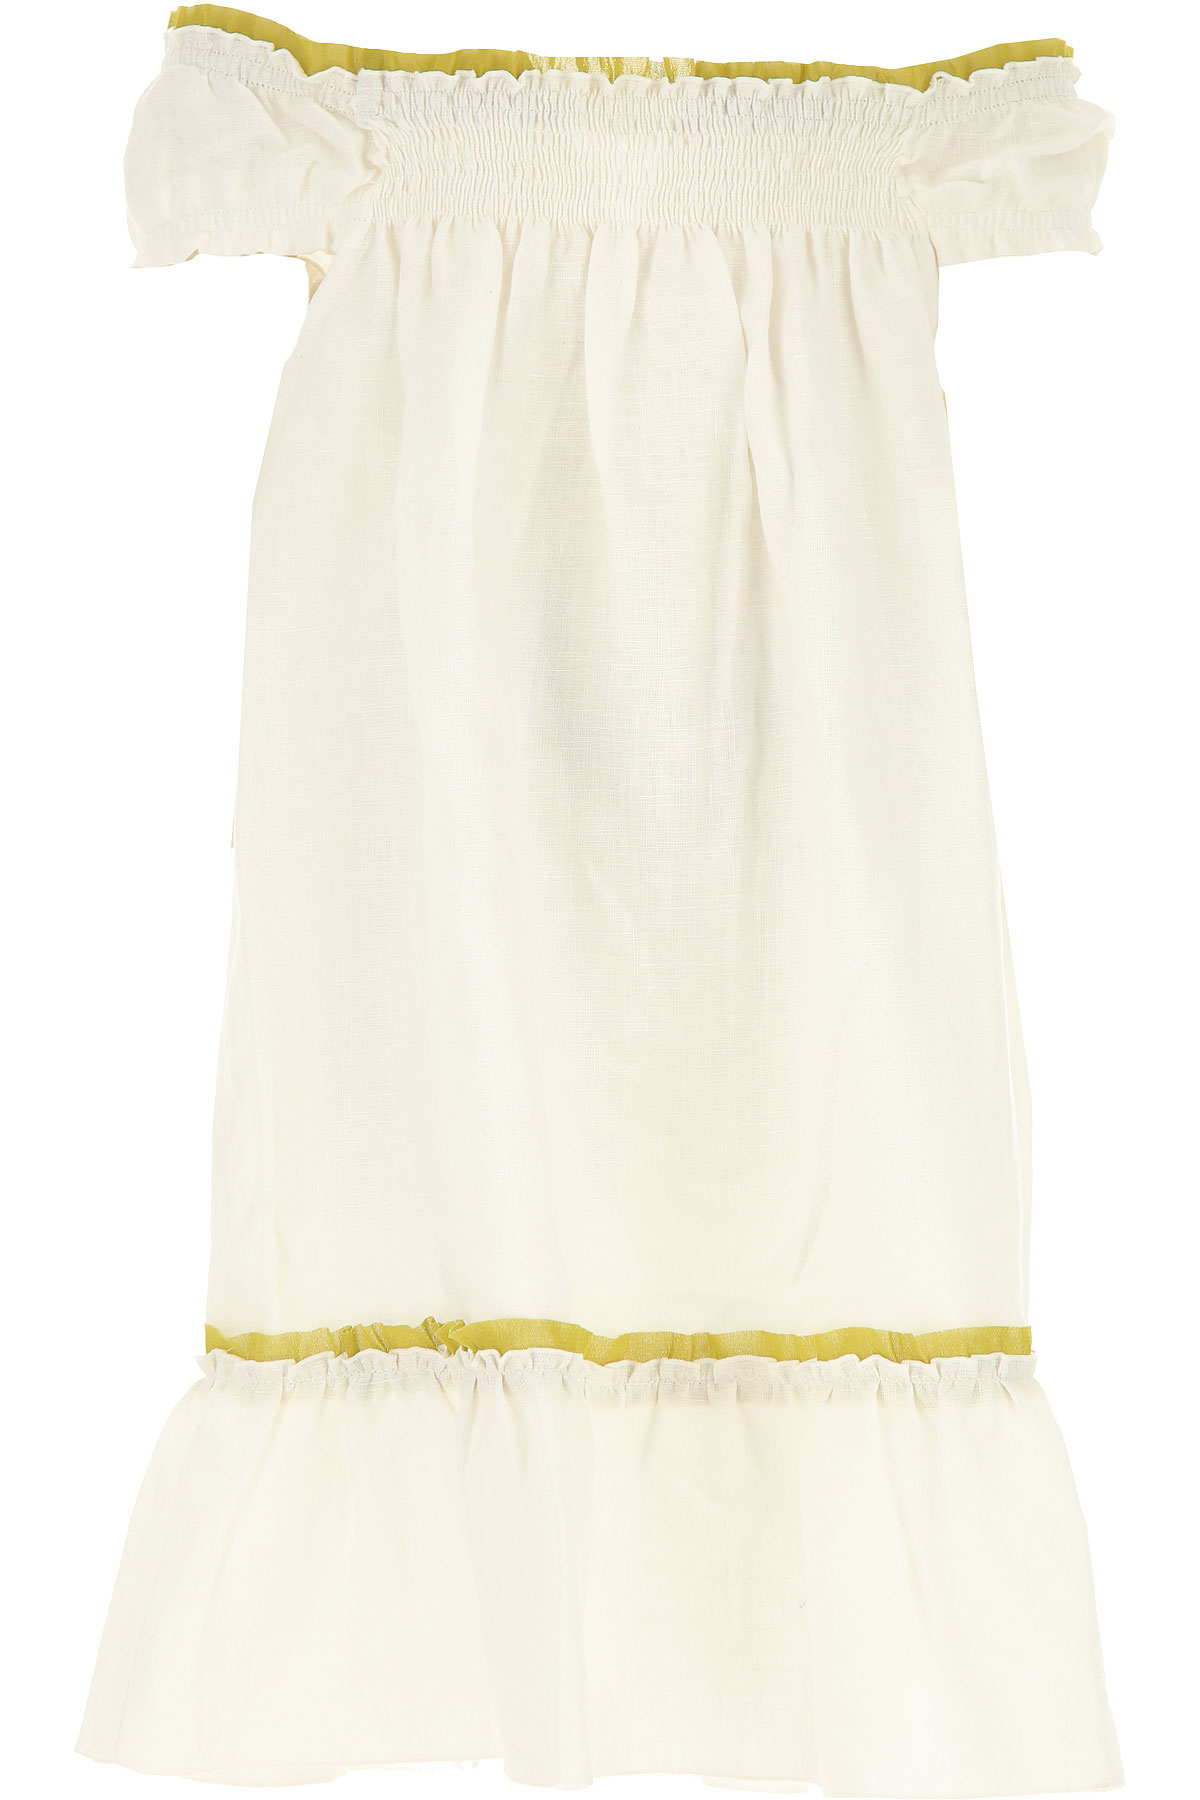 La Stupenderia Girls Dress On Sale in Outlet, White, linen, 2019, 2Y 6Y